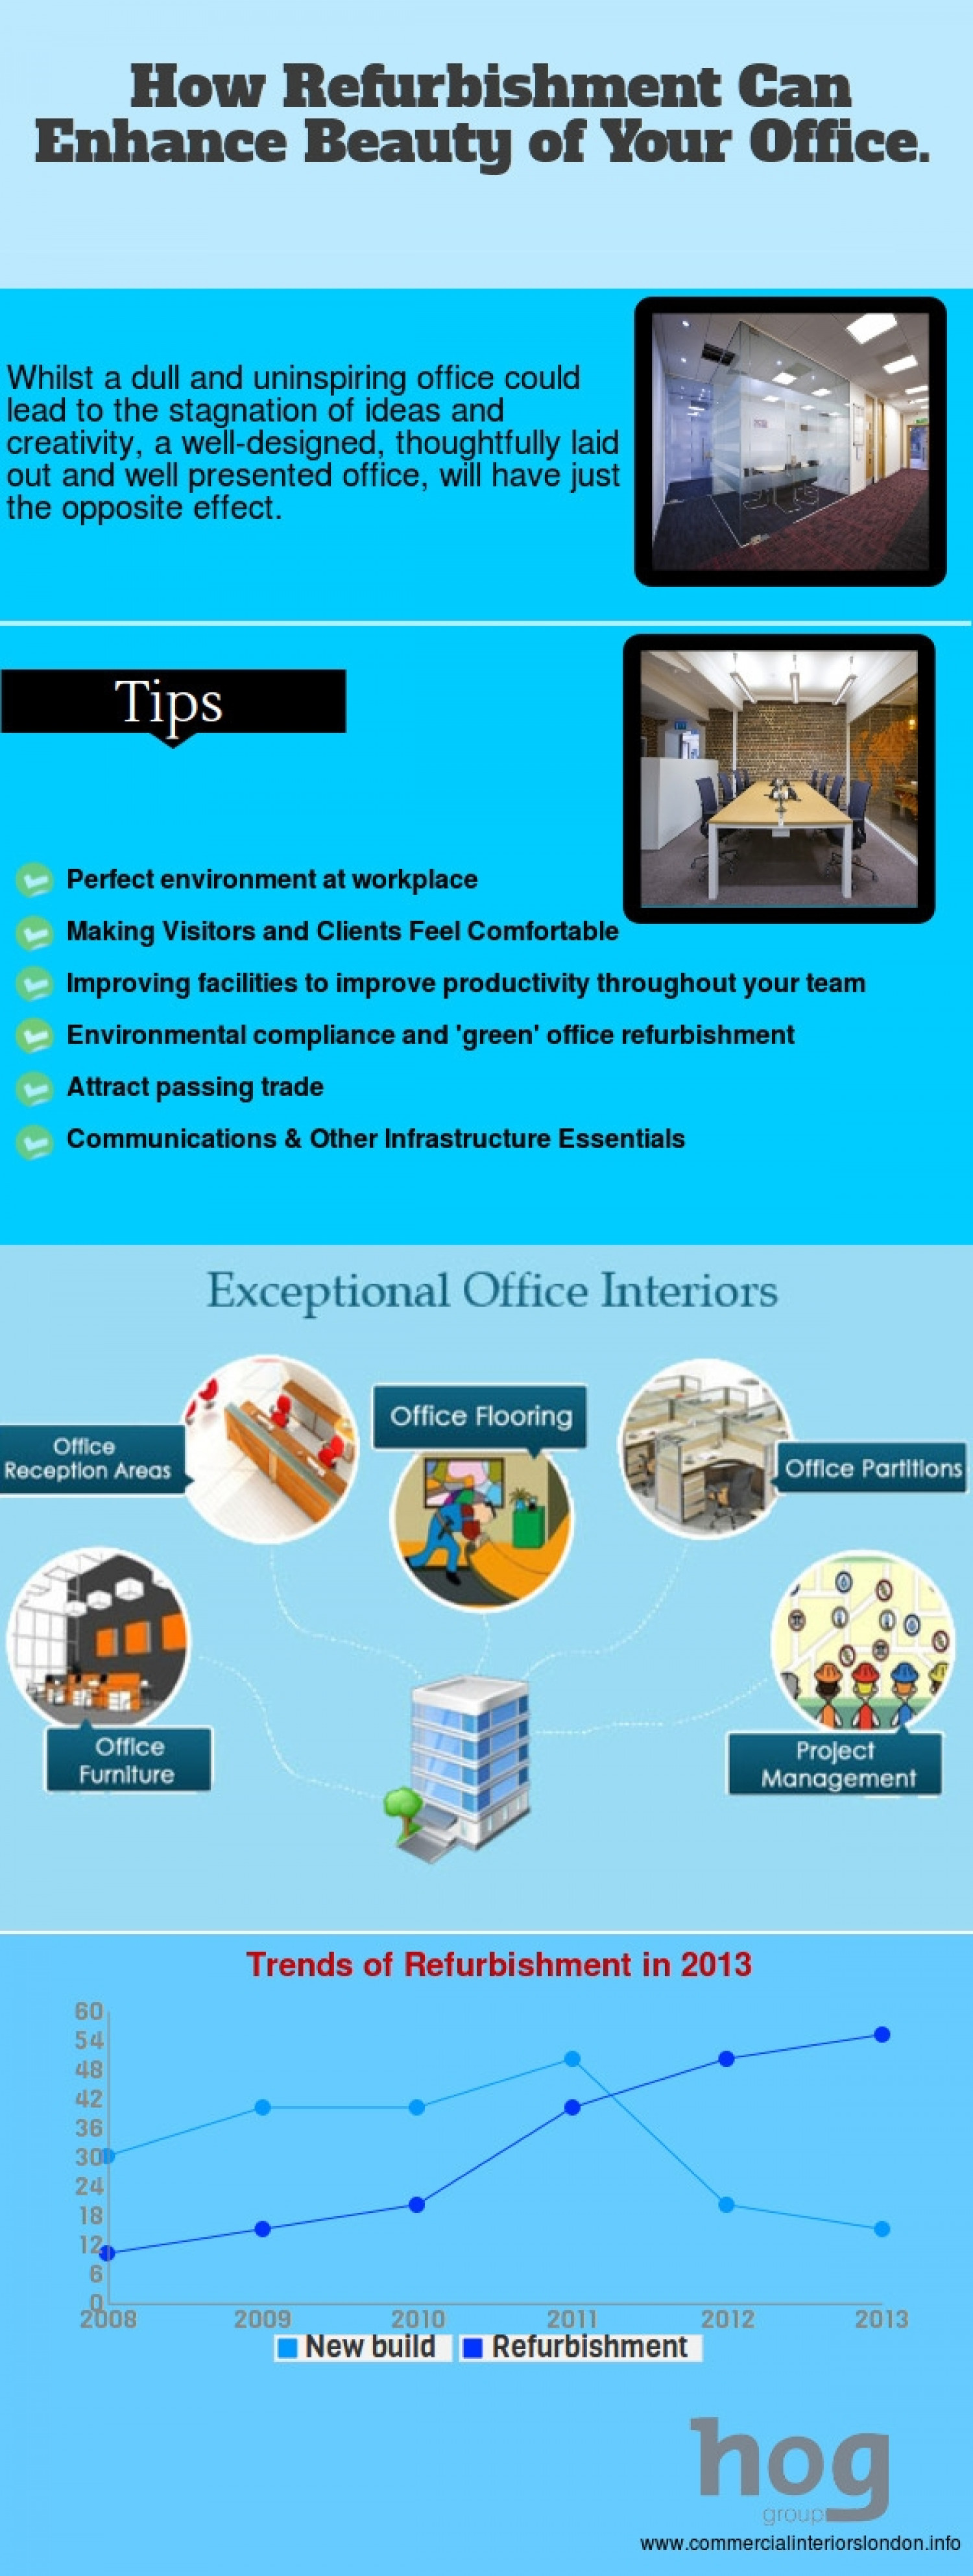 How Refurbishment Can Enhance Beauty of Your Office Infographic